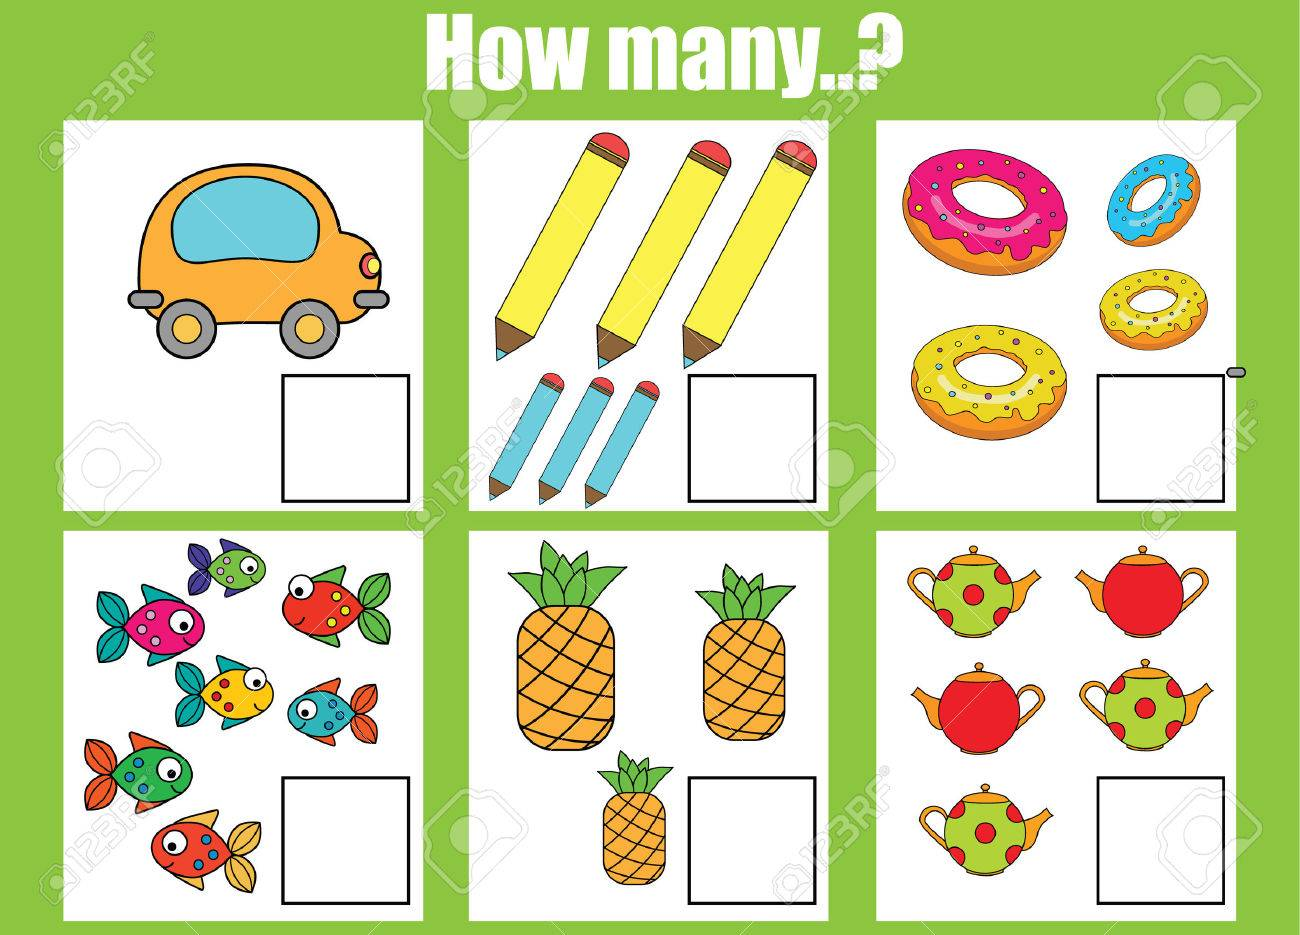 Counting Educational Children Game, Kids Activity Worksheet... Stock ...